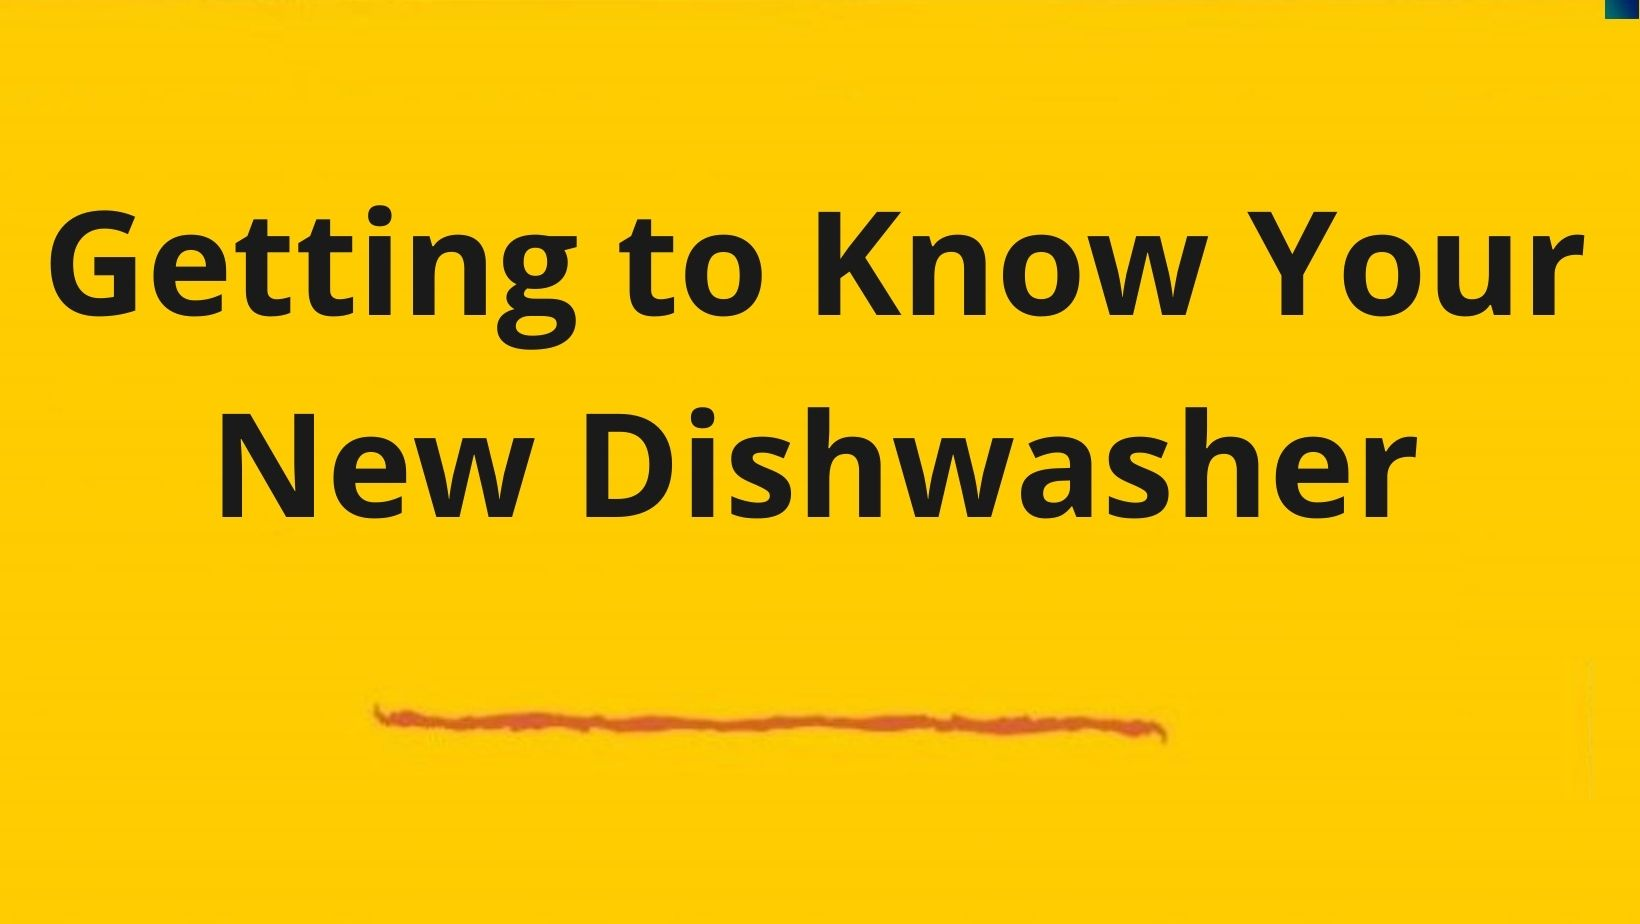 Important things to know about a new dishwasher